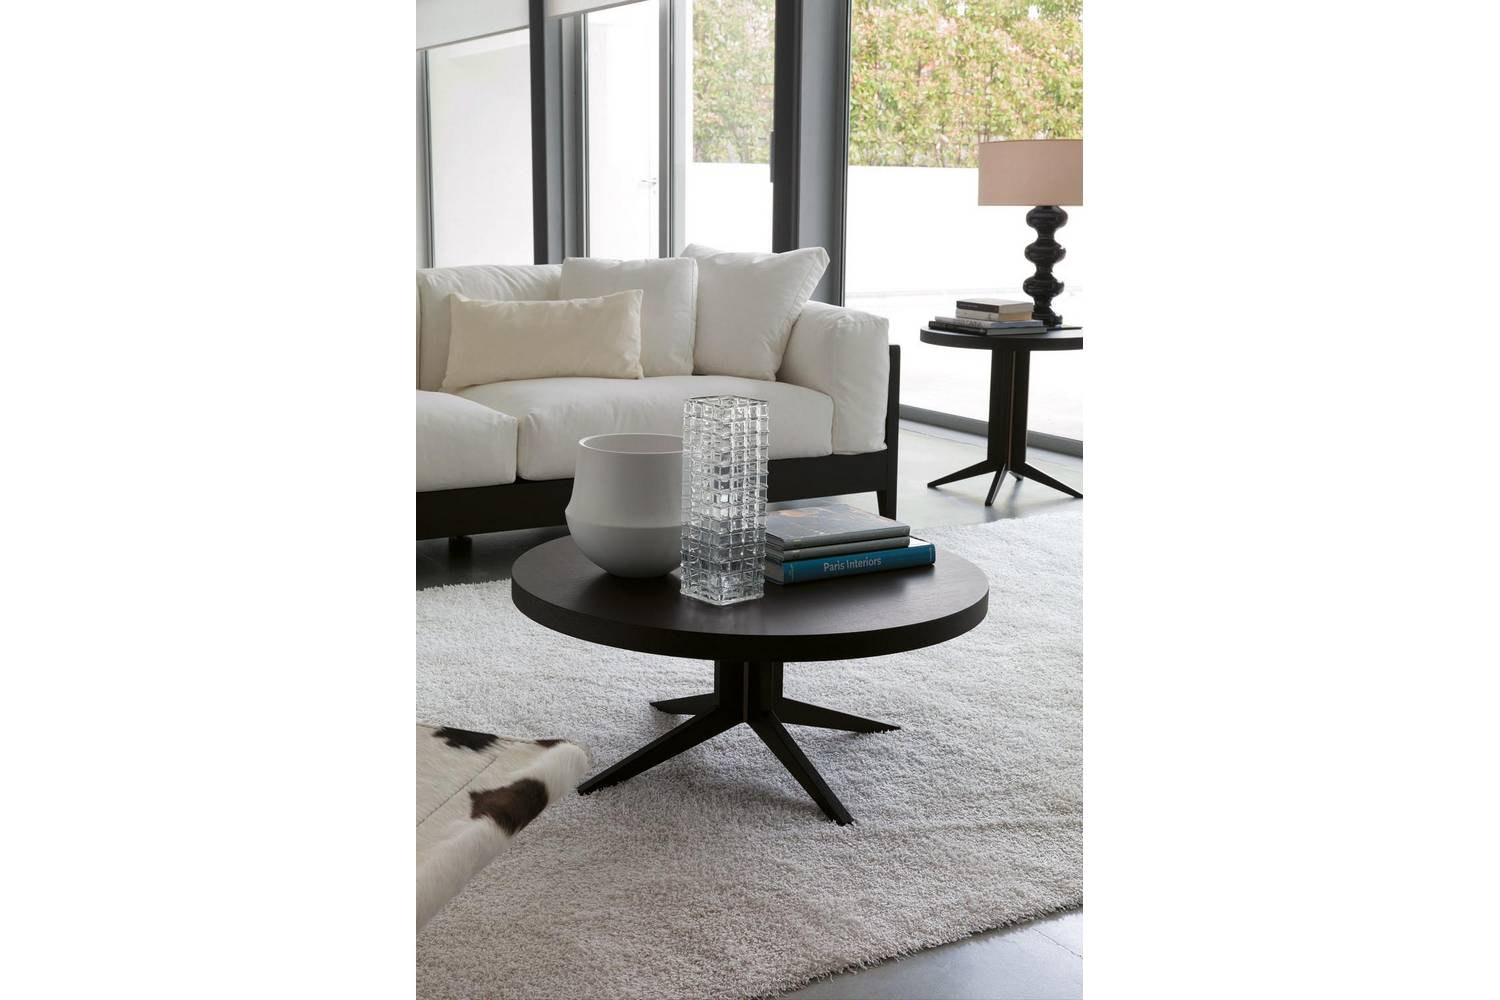 Bryant Coffee Table by Opera Design for Porada